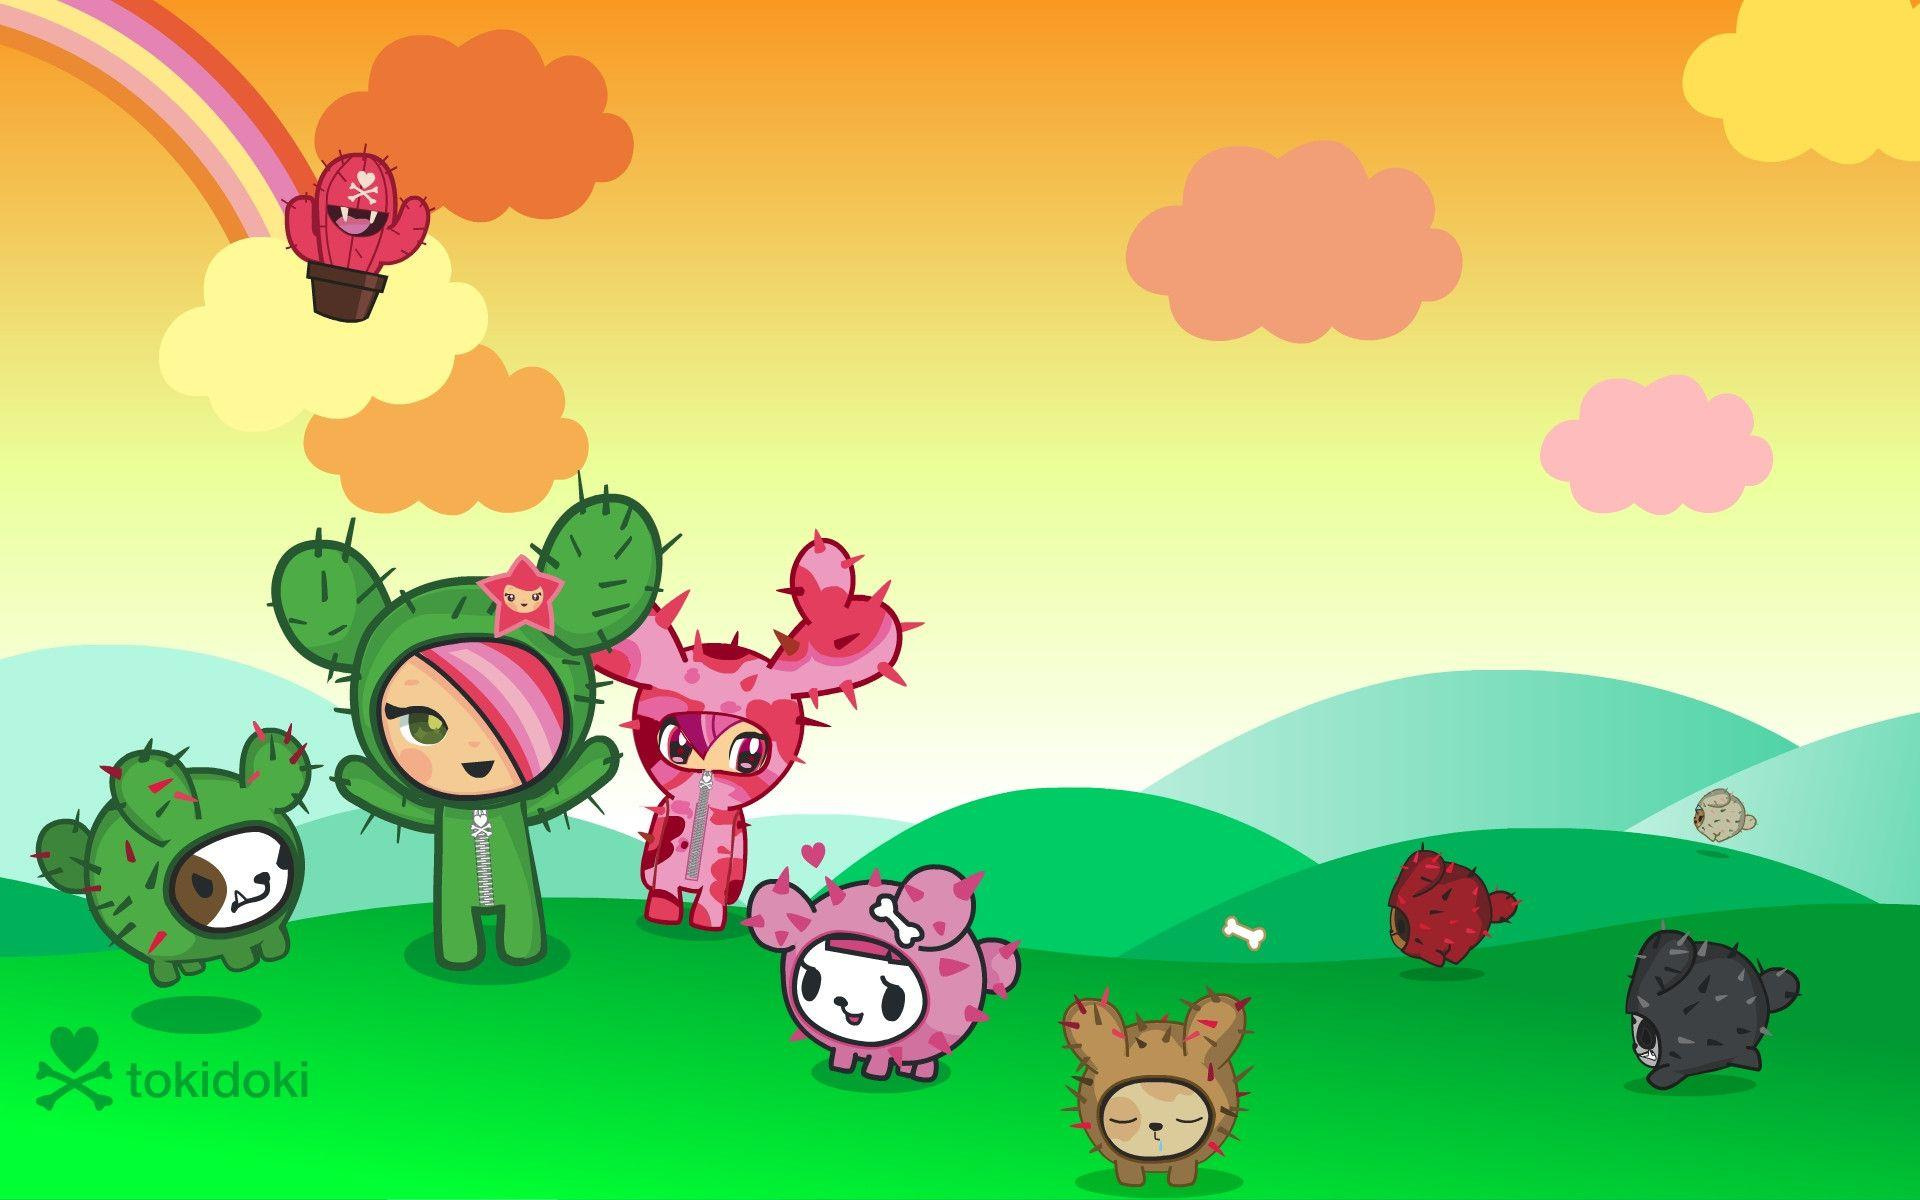 Cute Anime Couple Wallpaper Hd For Android Tokidoki Desktop Wallpapers Wallpaper Cave